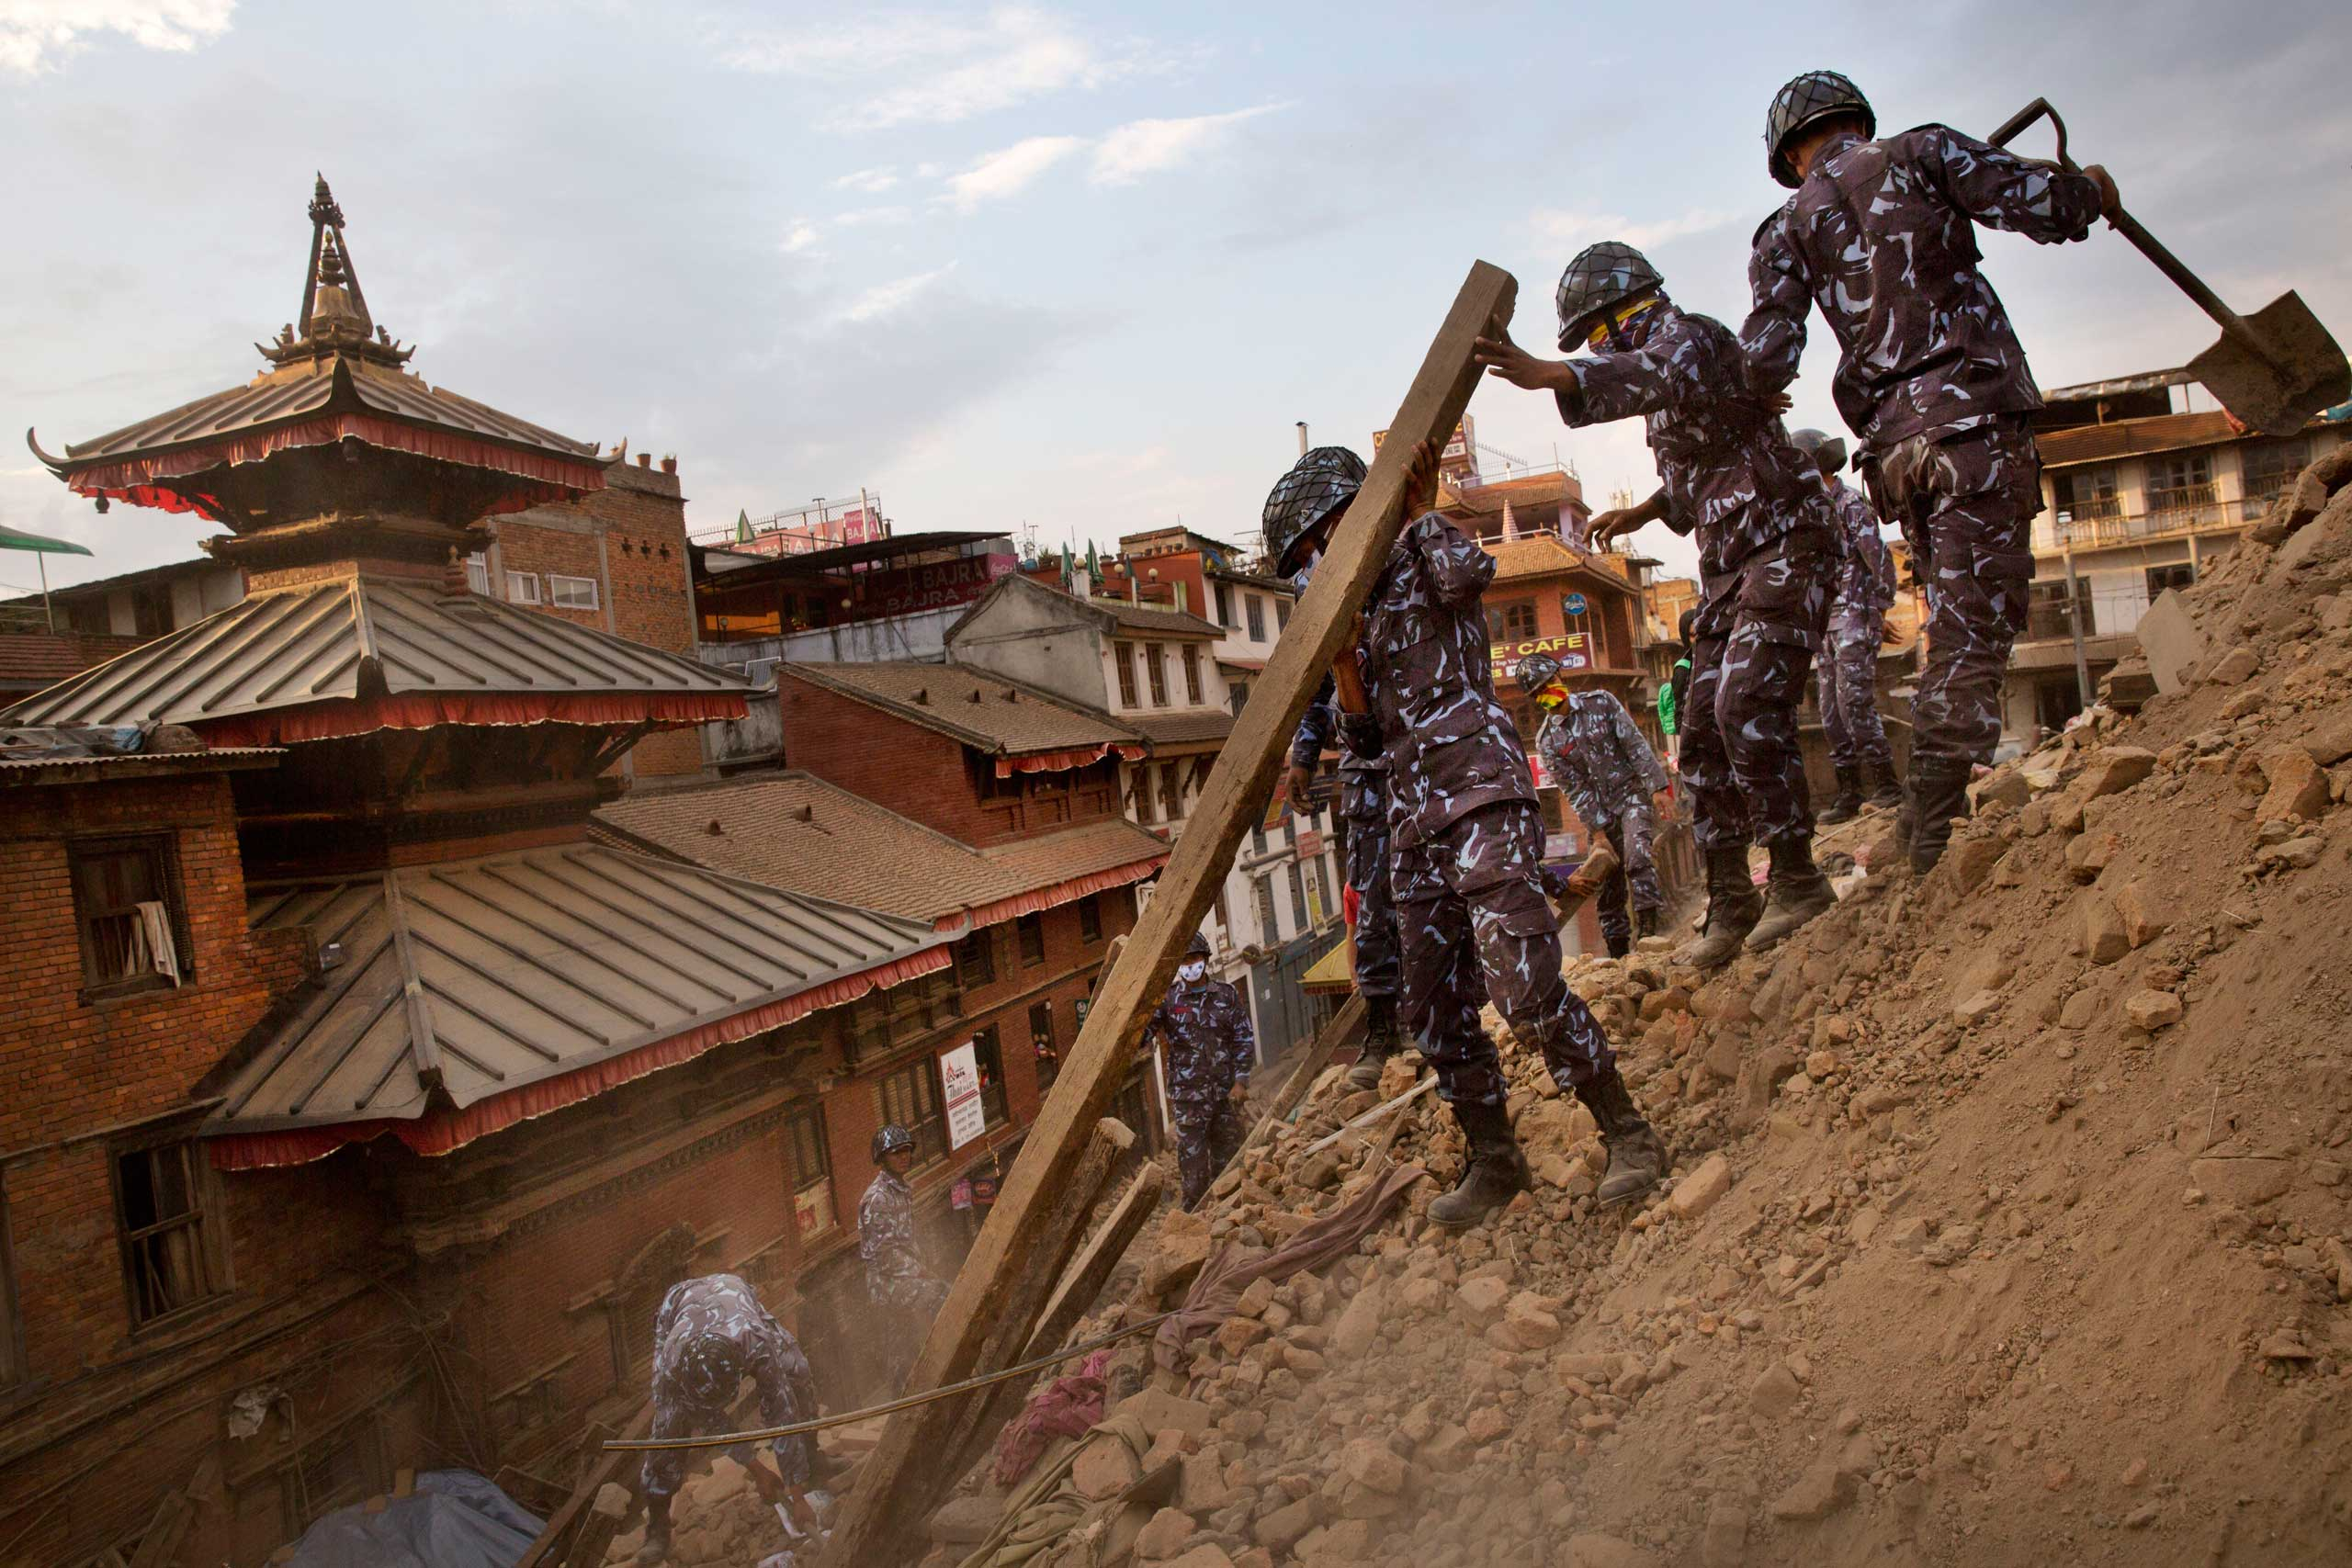 Nepalese policemen clear the debris at Basantapur Durbar Square, damaged in Saturday's earthquake, in Kathmandu on April 26, 2015.